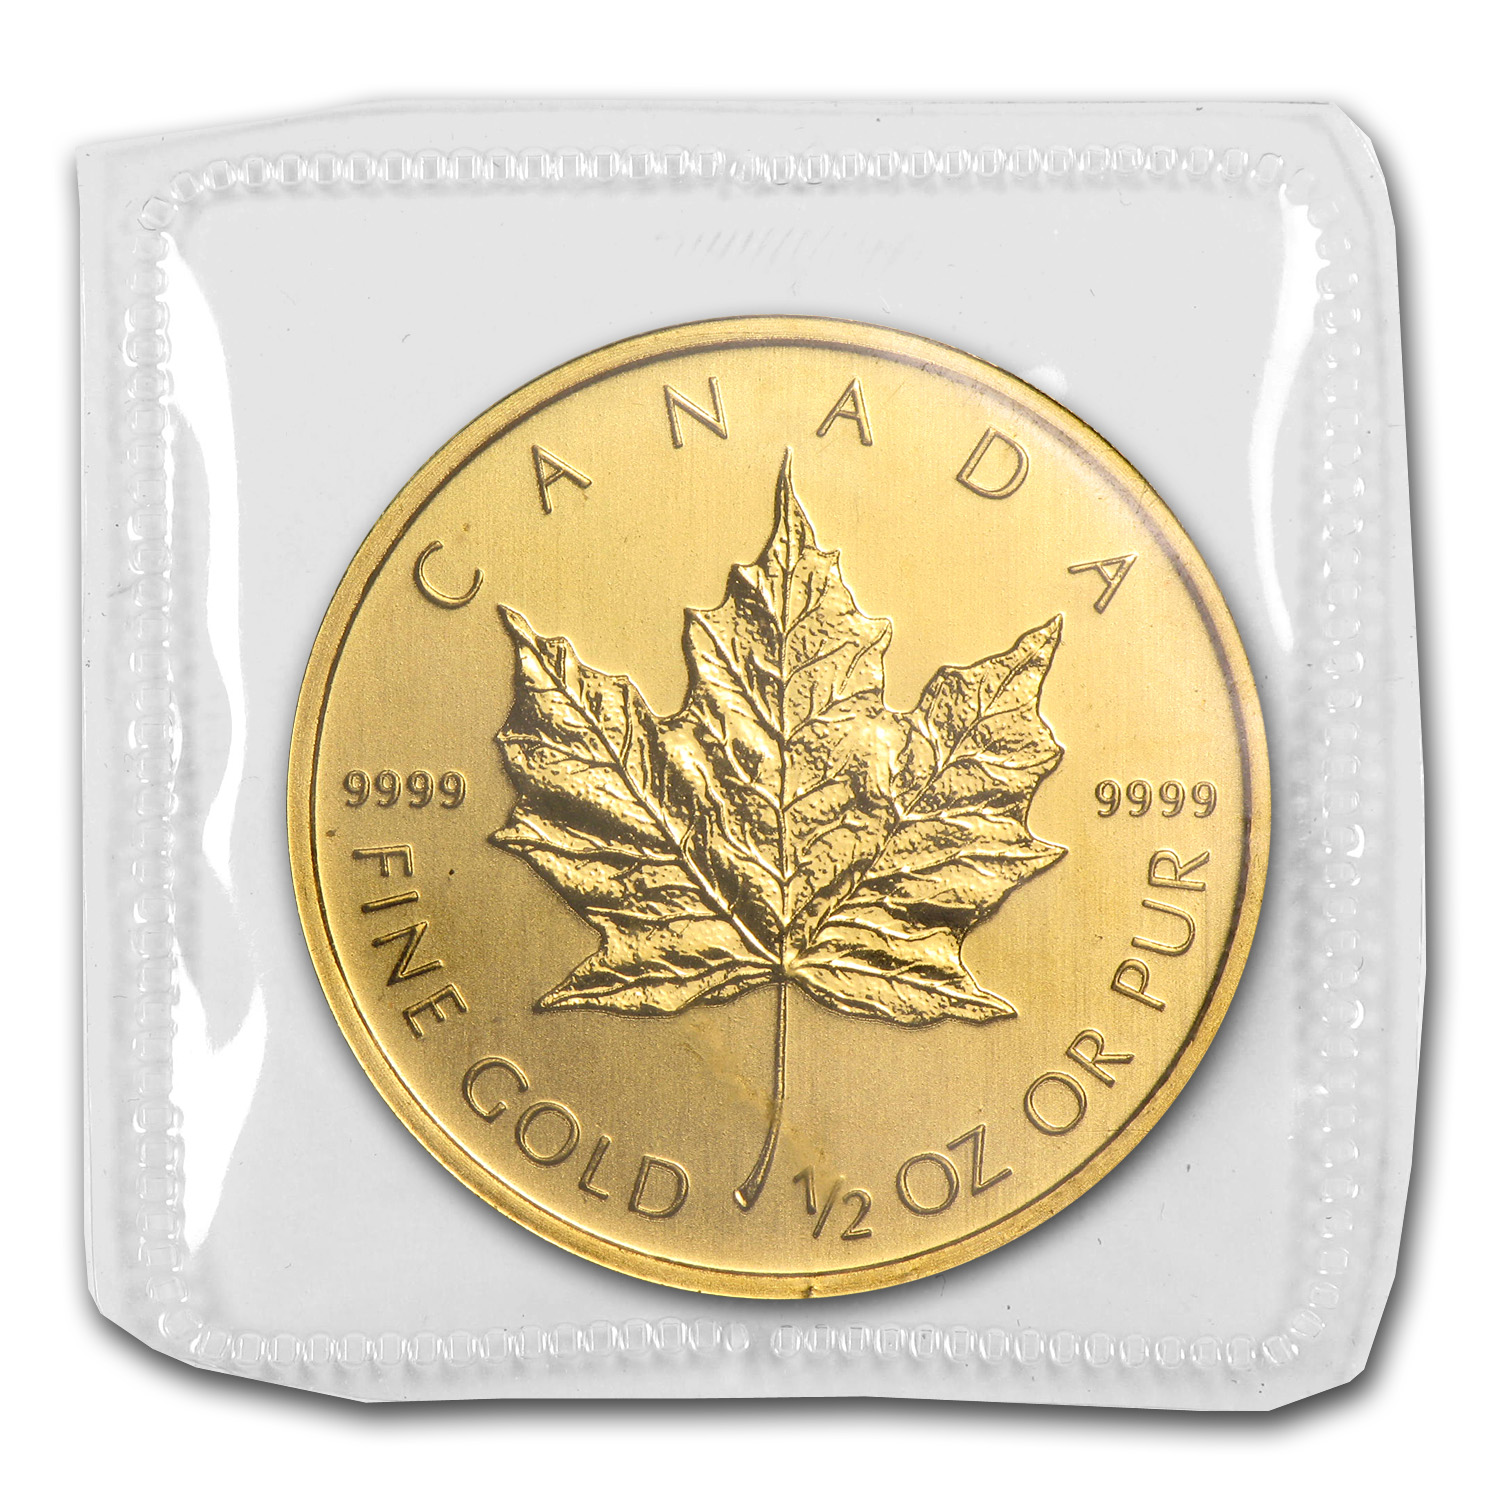 2011 1/2 oz Gold Canadian Maple Leaf